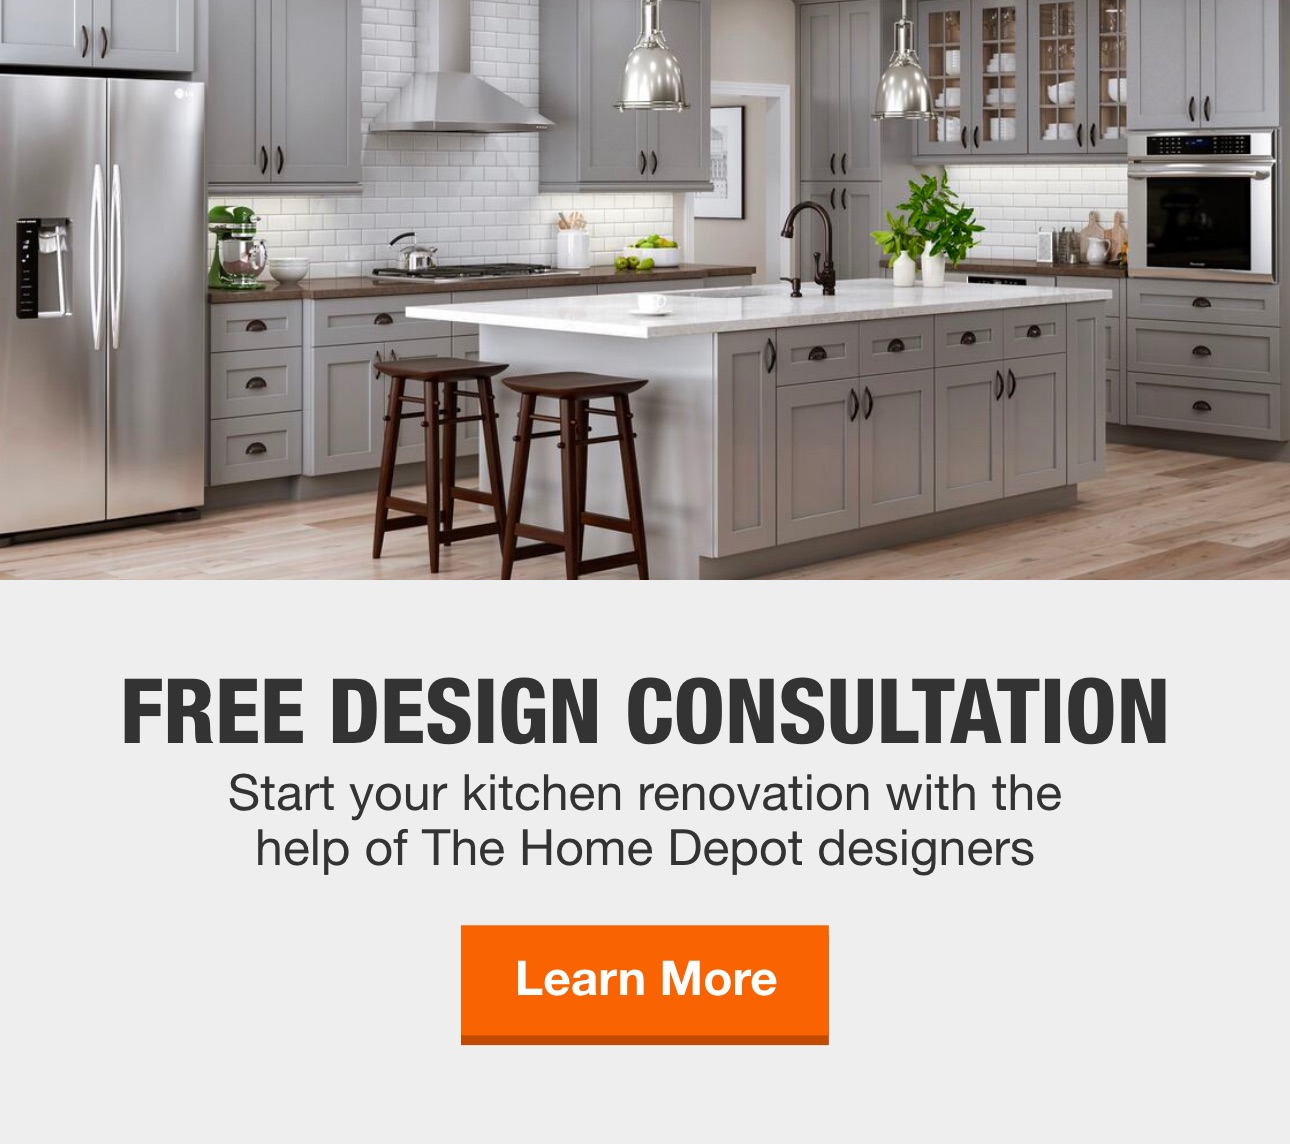 Kitchens At The Home Depot